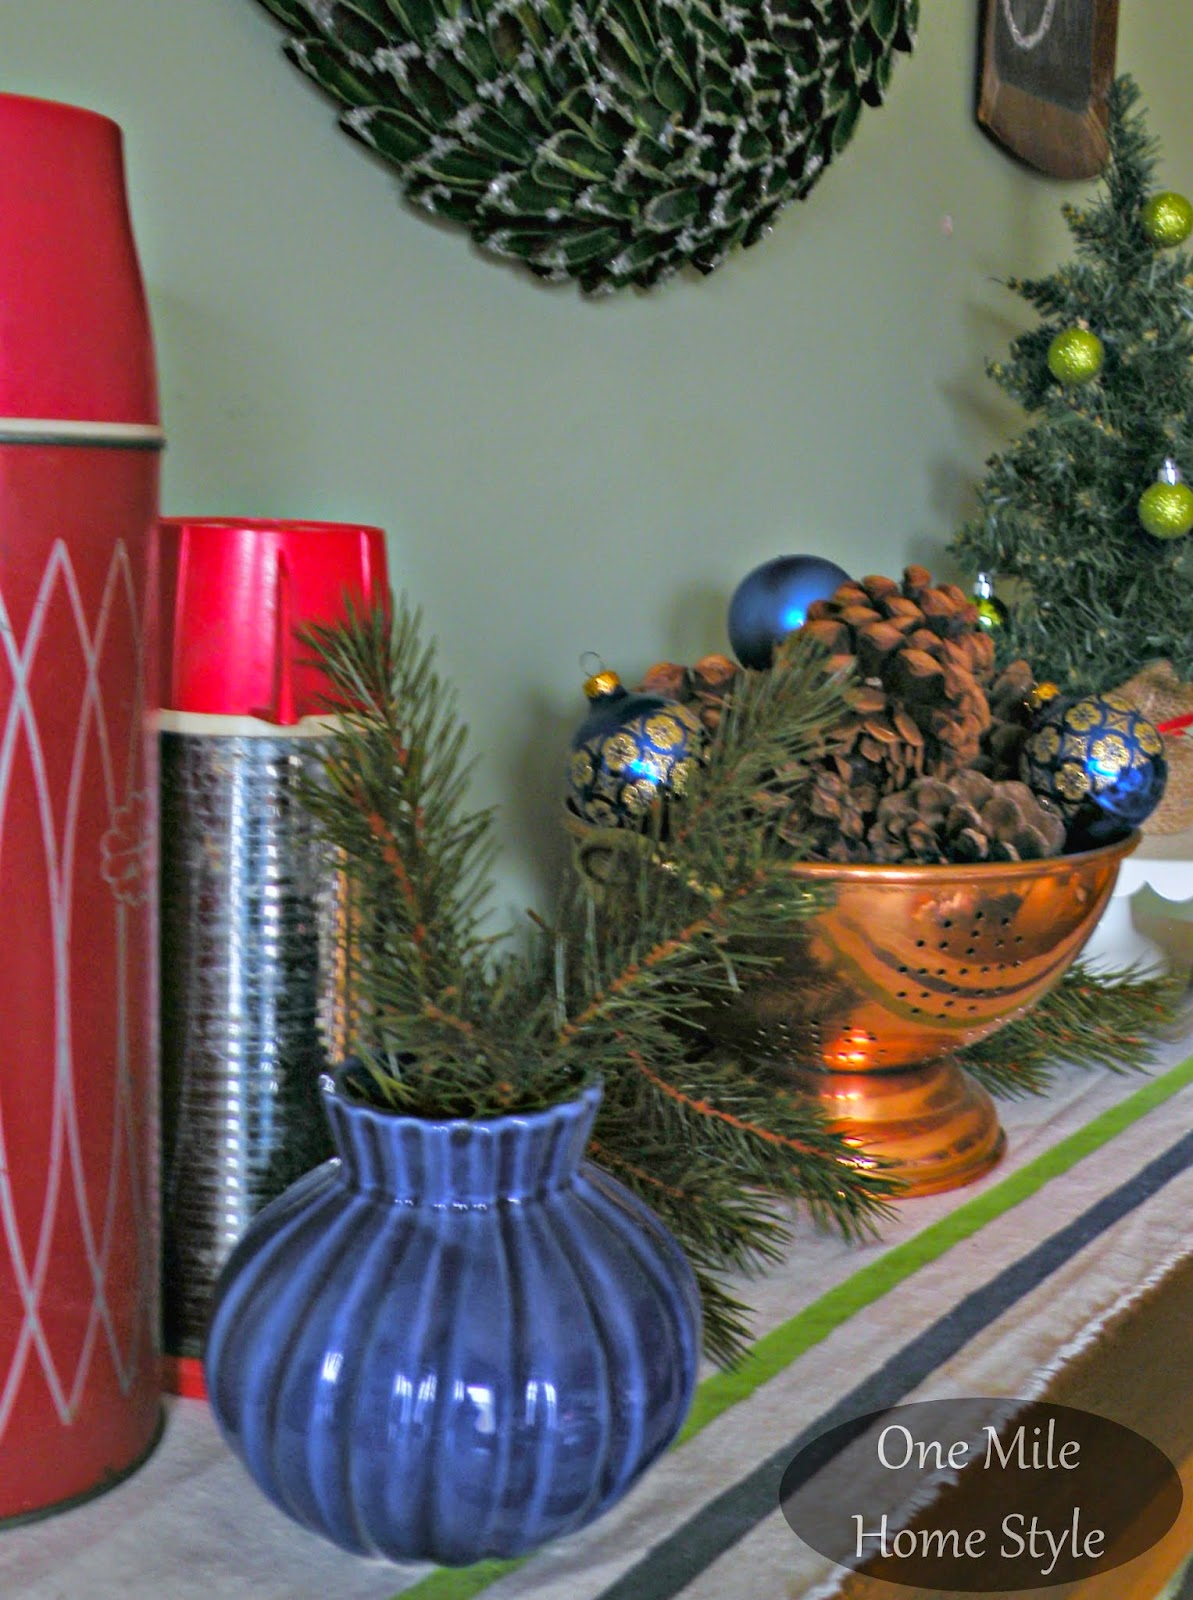 Winter Vignette - Vintage thermos, copper strainer, mini Christmas tree